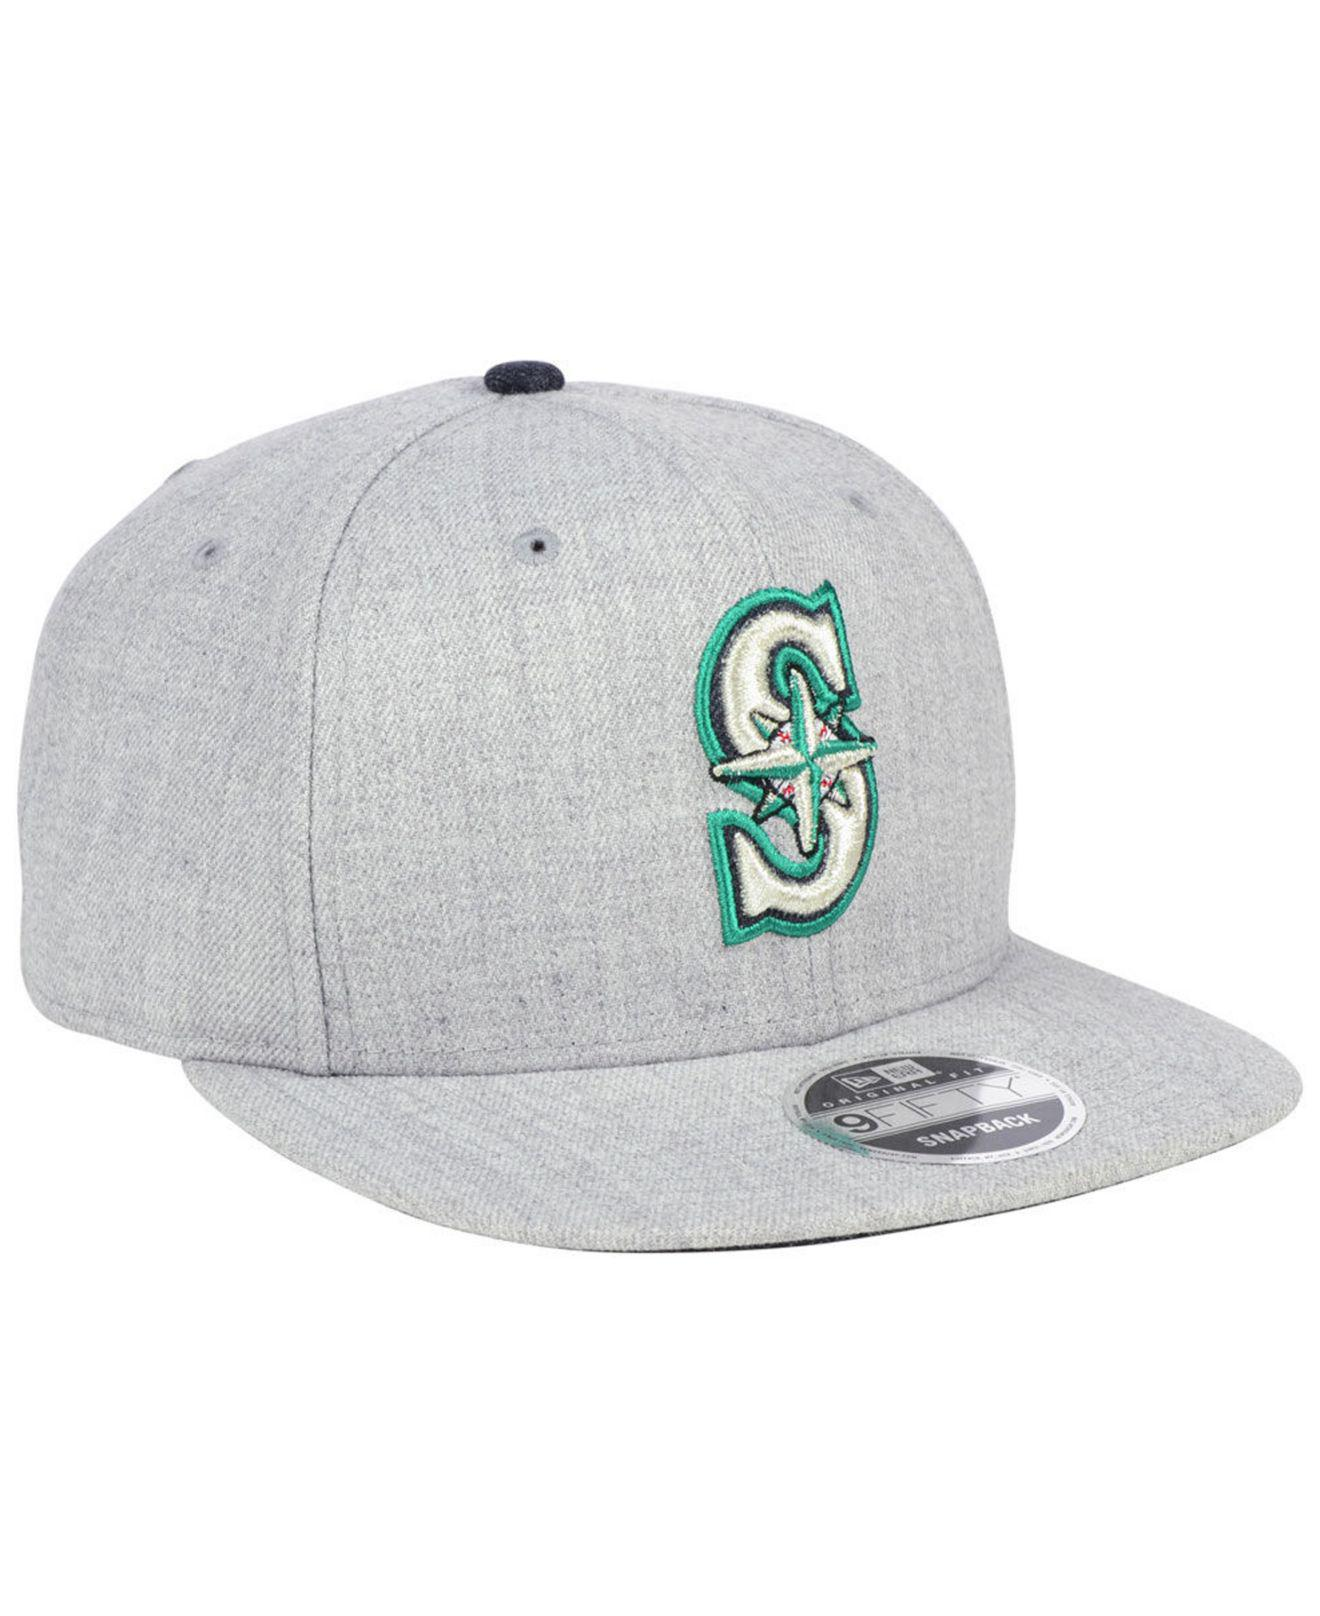 new arrivals 43b98 6bfc4 ... ireland seattle mariners heather hype 9fifty snapback cap for men lyst.  view fullscreen 747fb f36ce